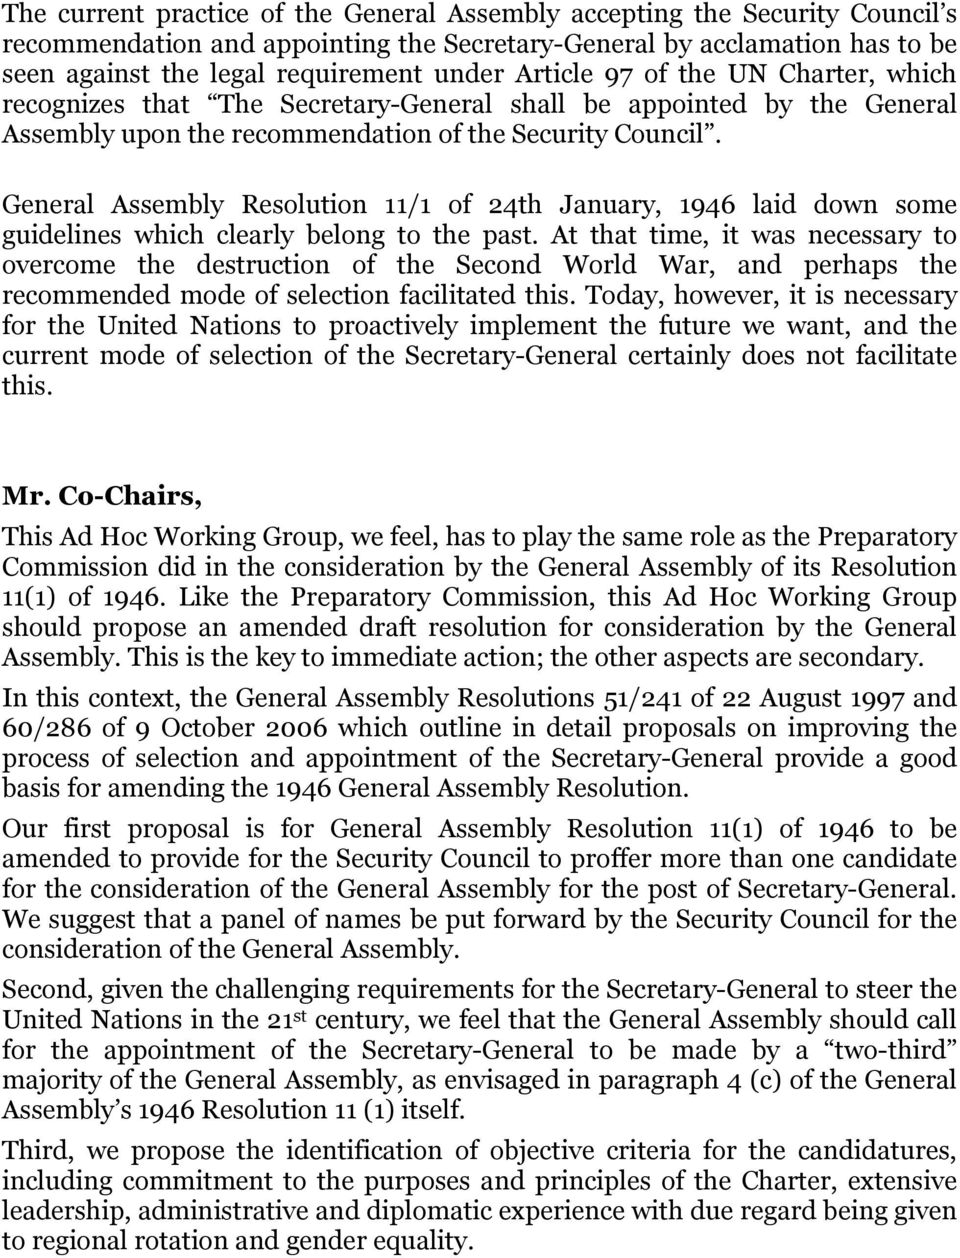 General Assembly Resolution 11/1 of 24th January, 1946 laid down some guidelines which clearly belong to the past.